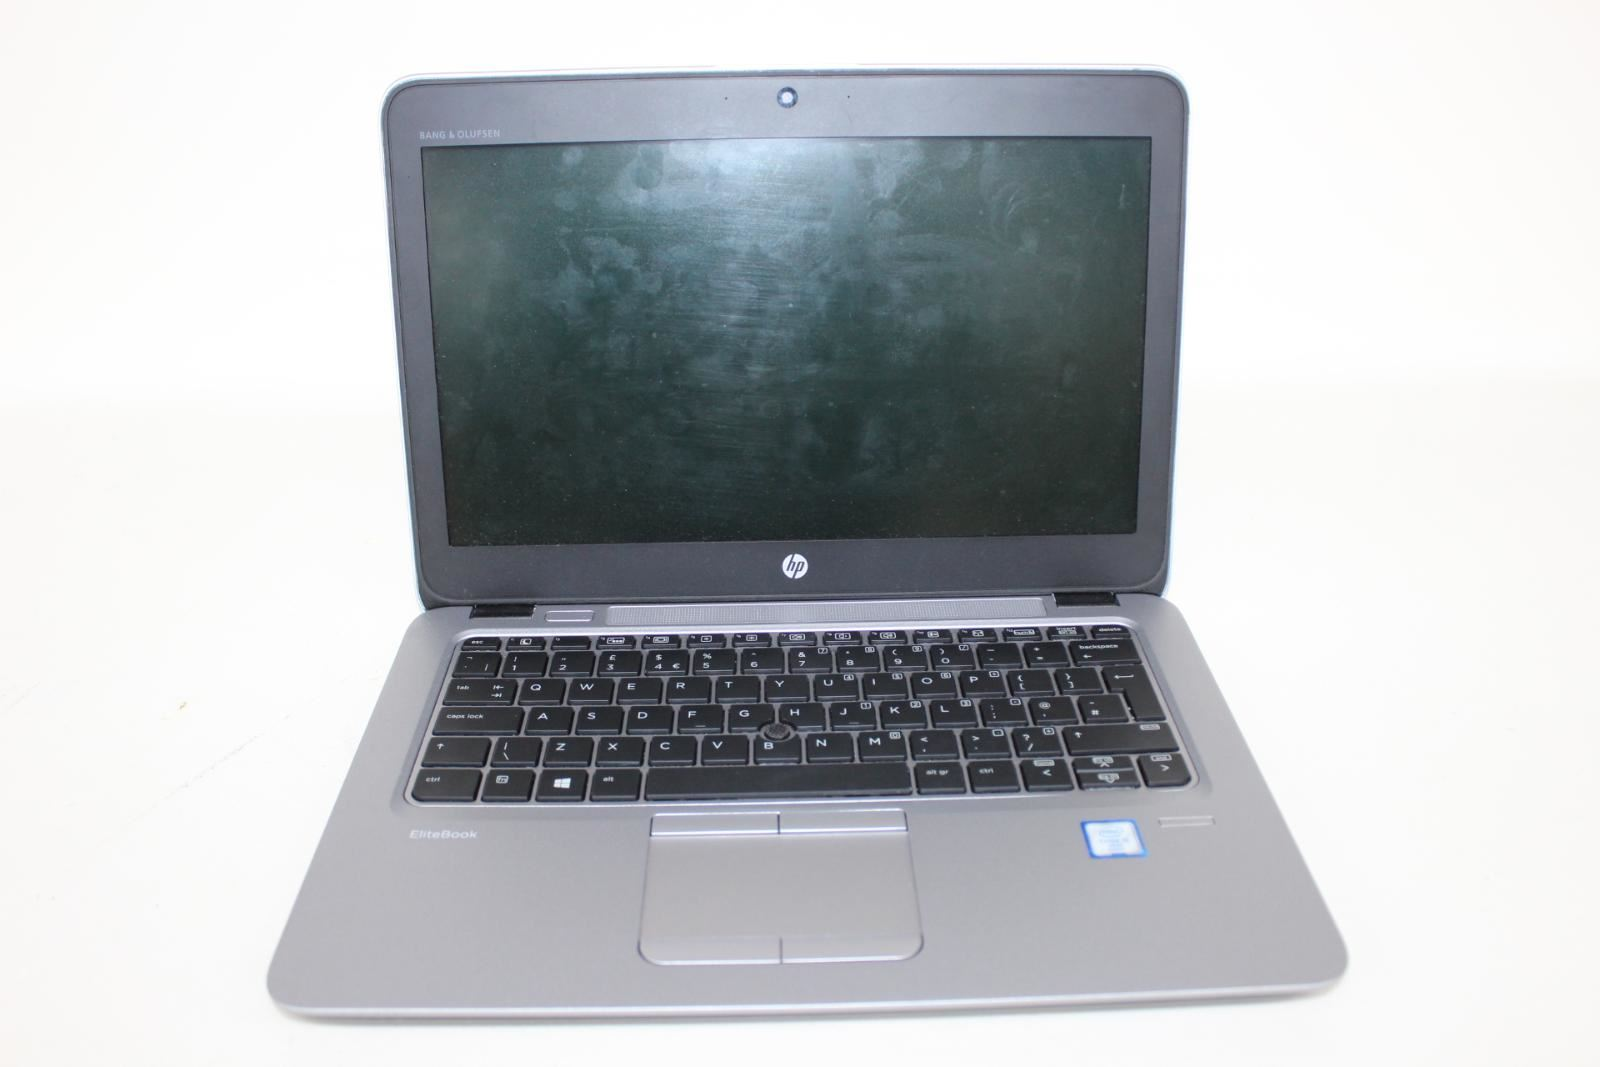 HP-Elite-Book-820-G3-IntelCore-i5-vPro-No-HDD-Ram-Ultrabook-Laptop-Computer